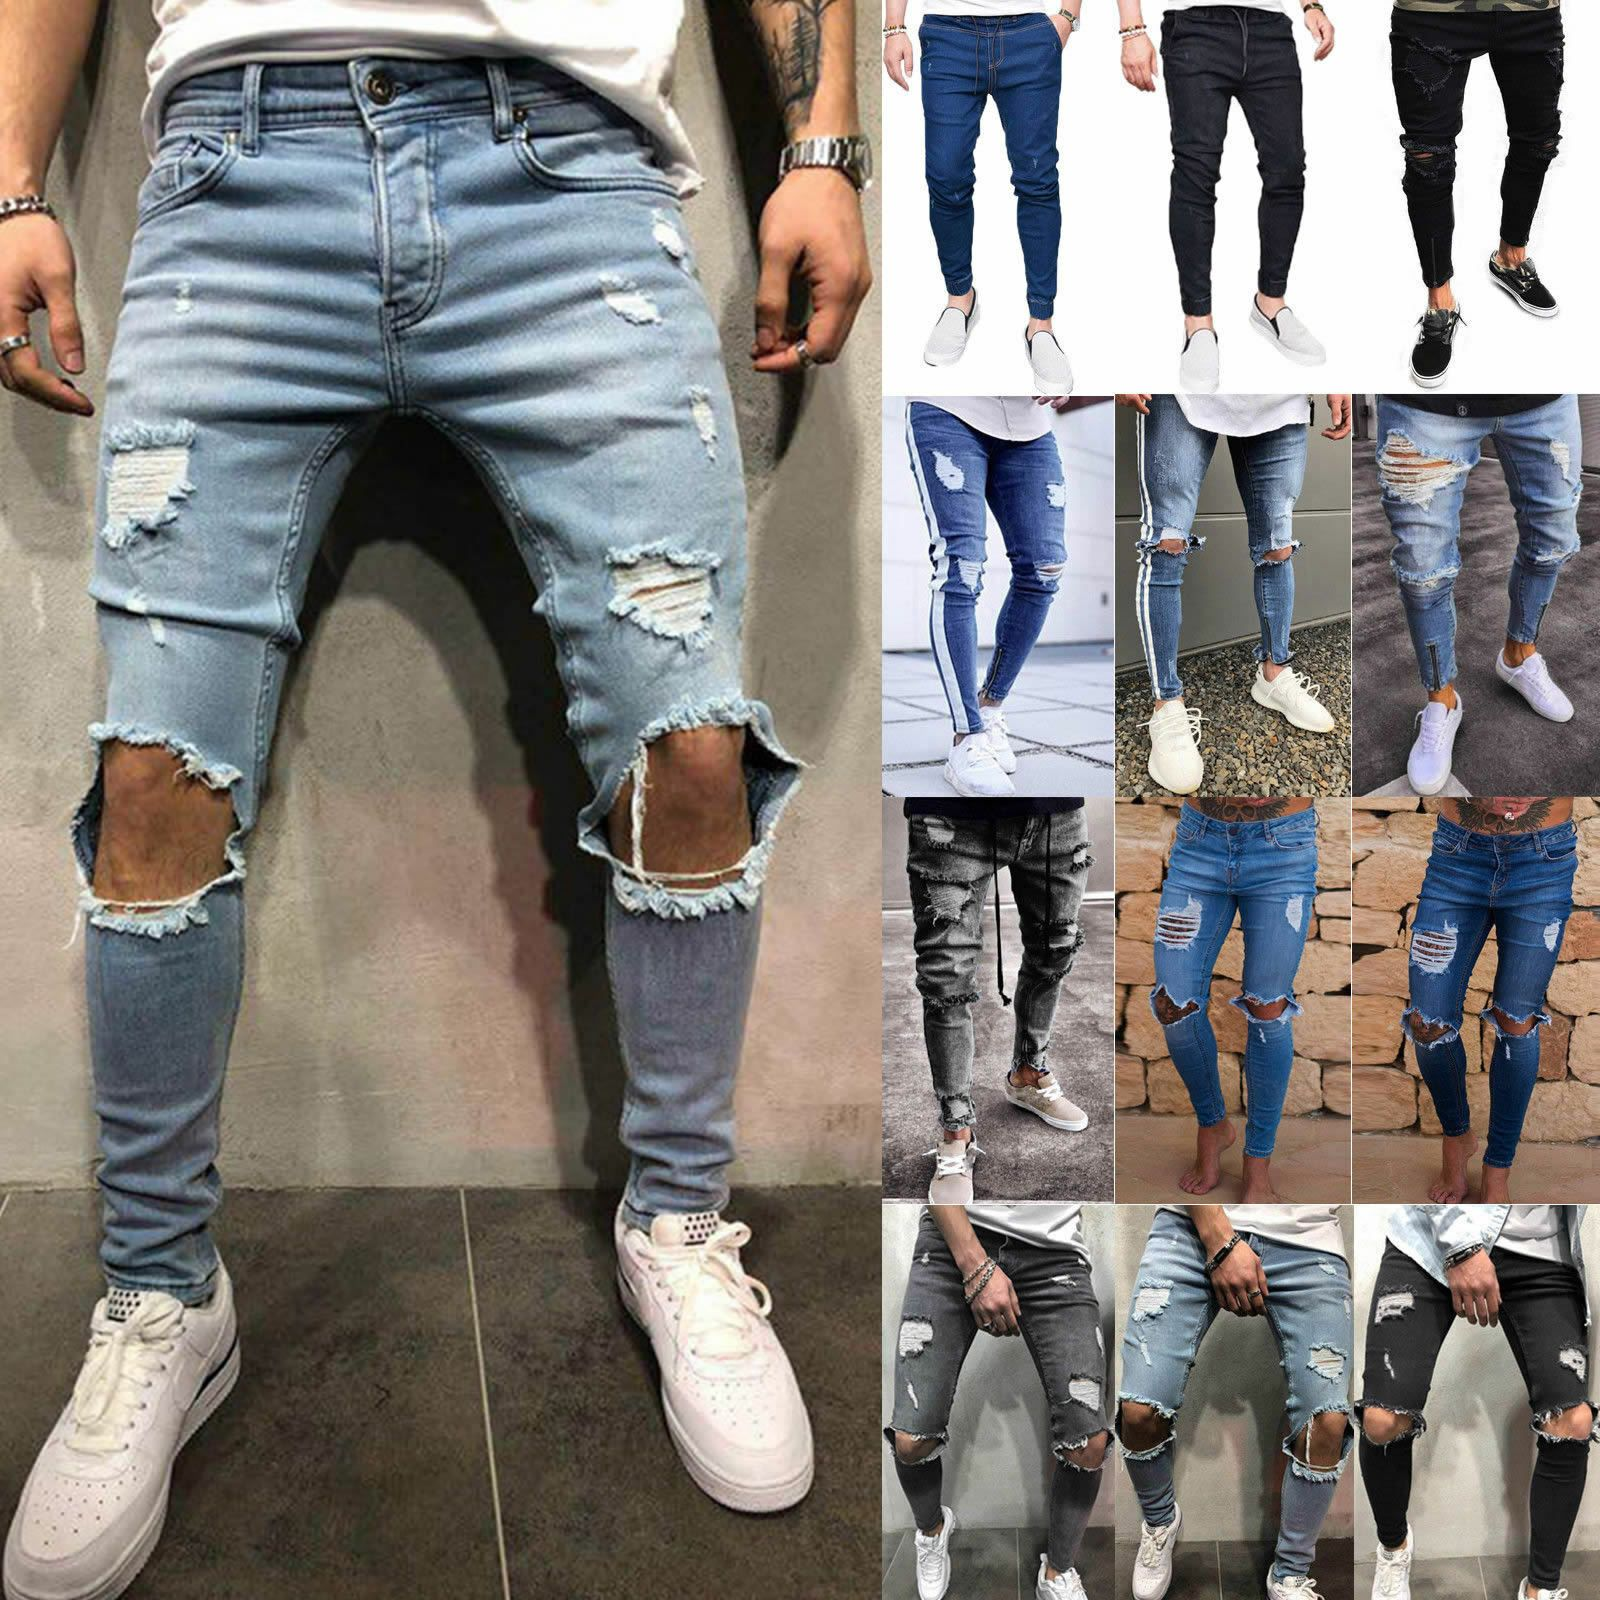 Men Stretch Jeans Ripped Skinny Jeans Destroyed Pants Frayed Slim Fit Denim Pant